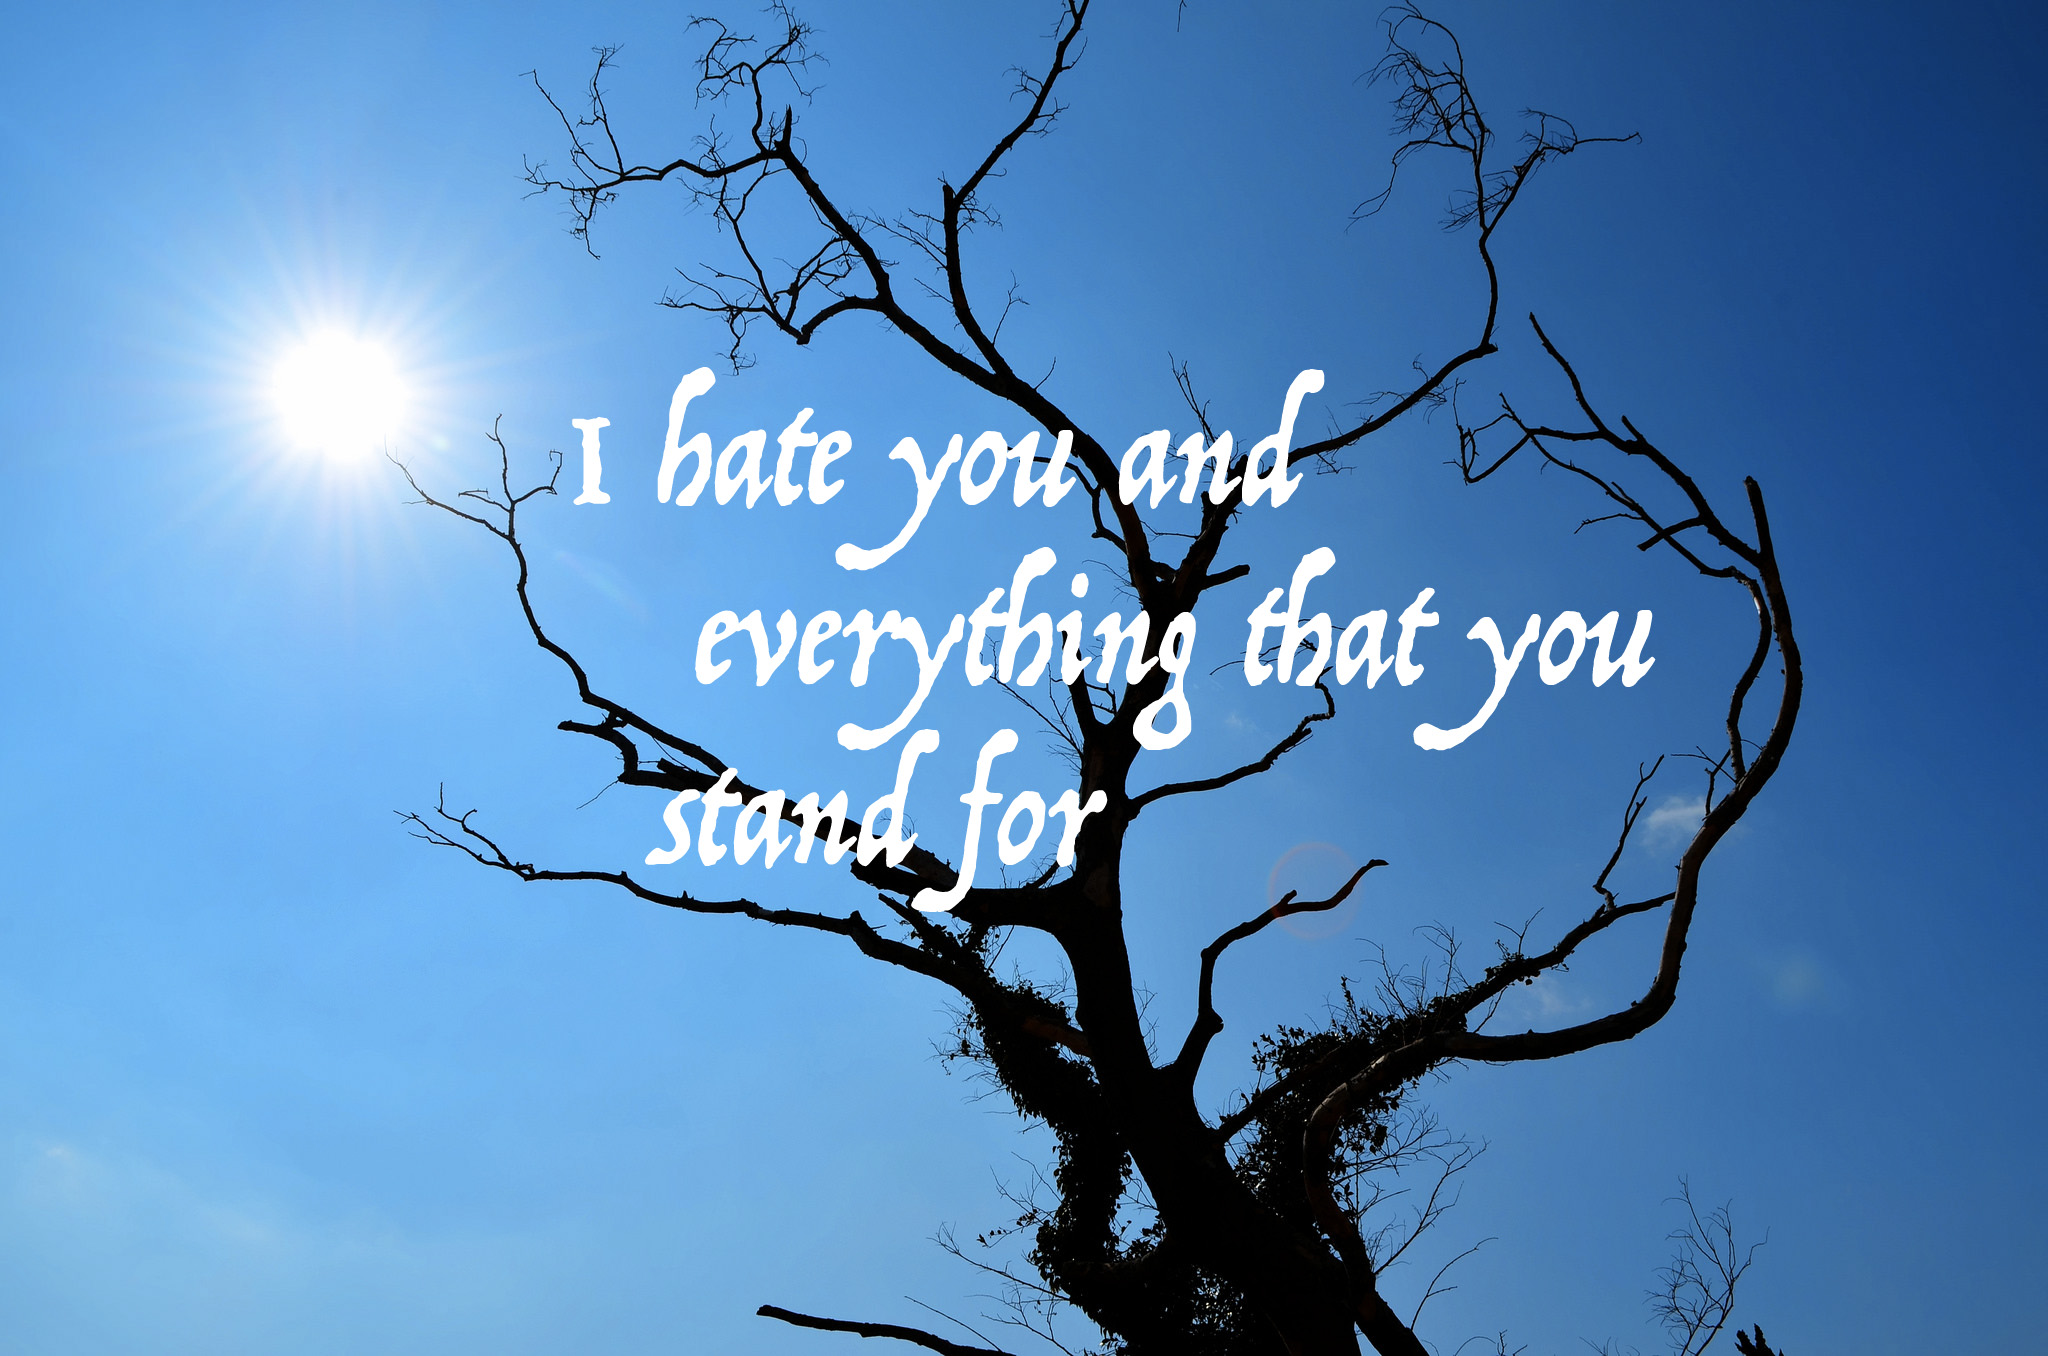 I hate you and everything that you stand for